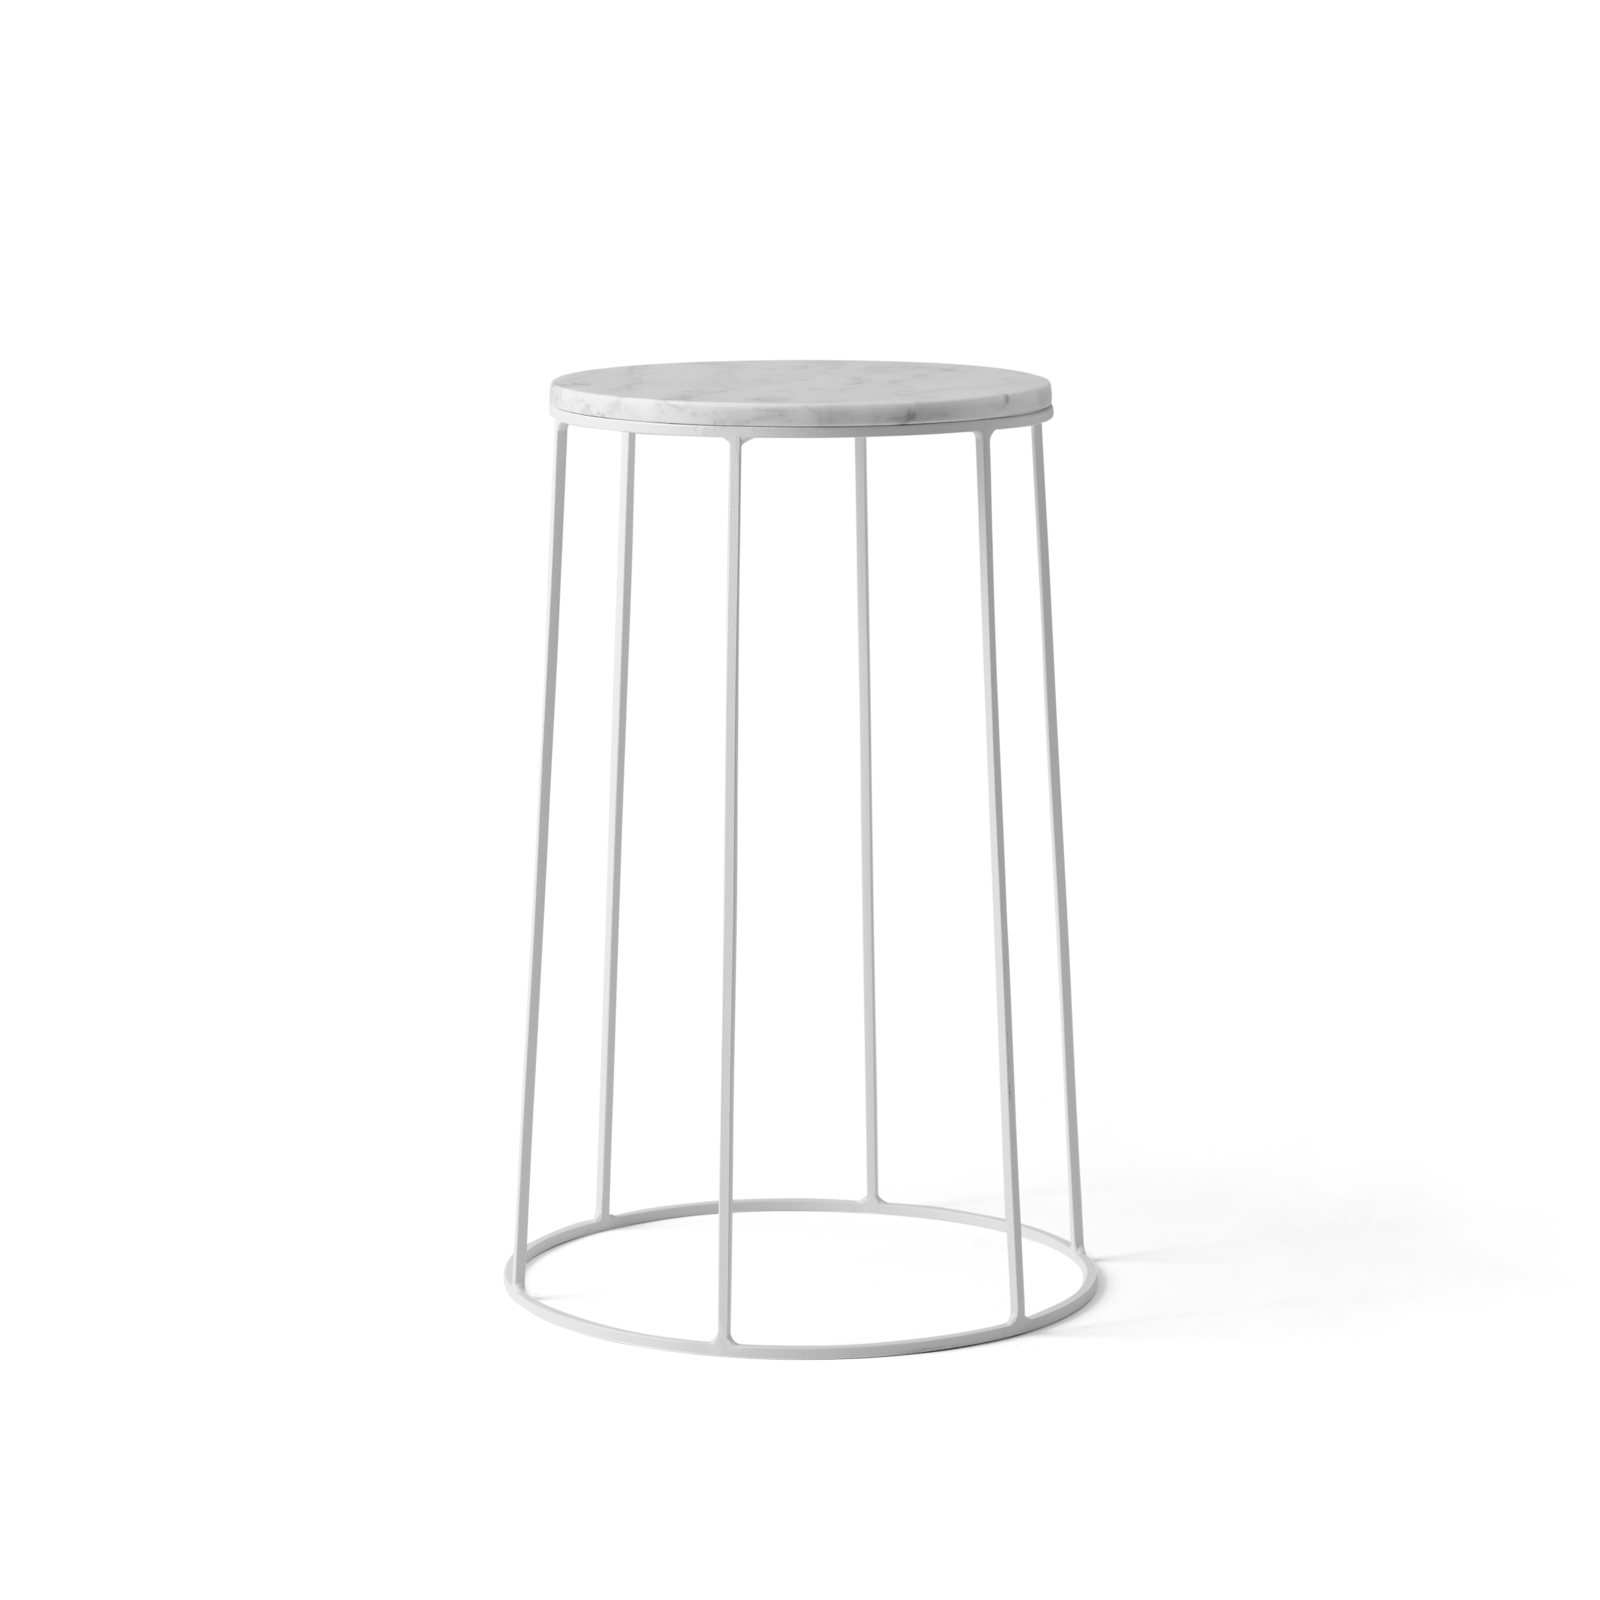 tables high chairs best and dining inch round table marble pictures kitchen room pedestal of